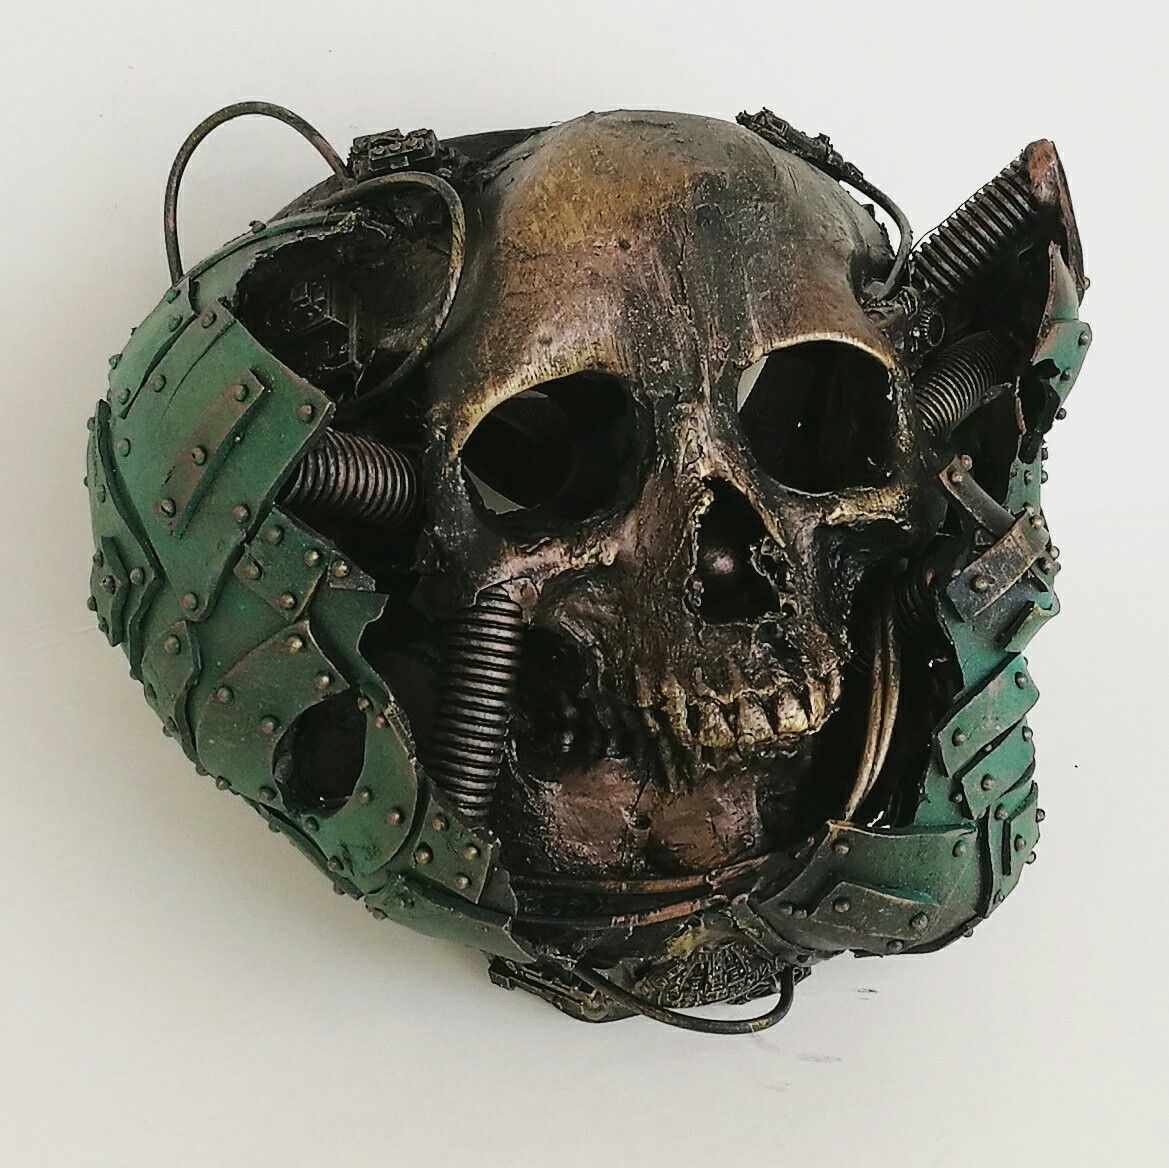 Behind the mask. Custom masks and art made to order from